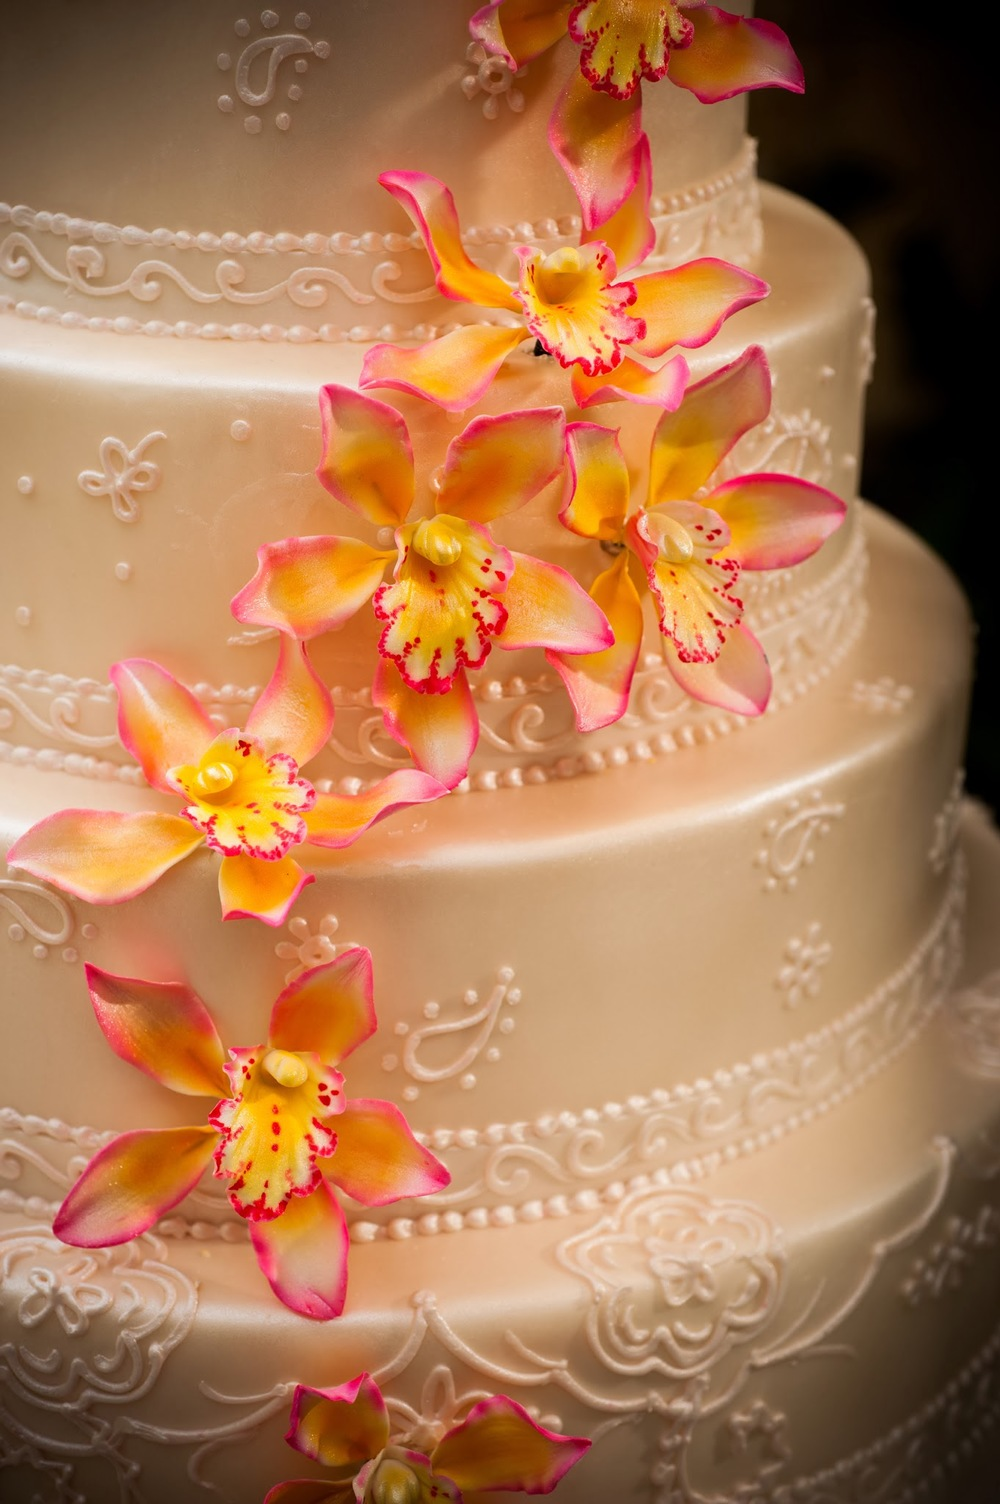 Sugar Flowers Detail | Edible Art Bakery of Raleigh